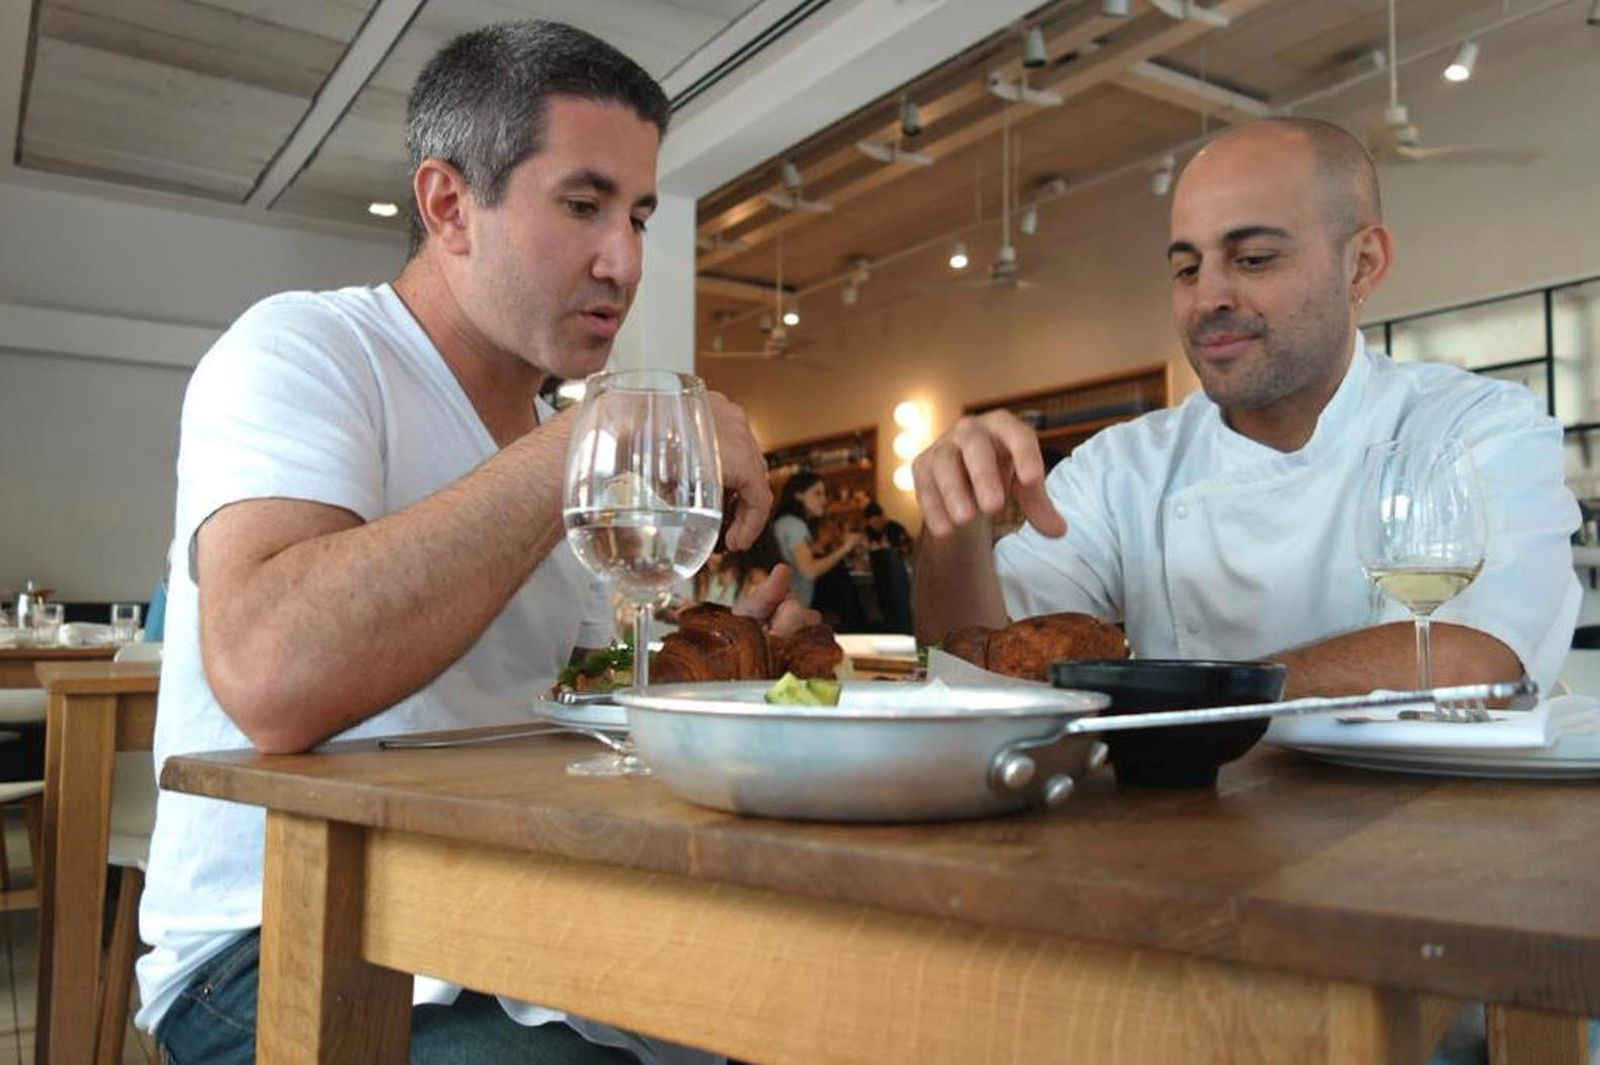 Solomonov dining with Israeli celebrity chef Meir Adoni in Tel Aviv. Photo courtesy of Florentine Films